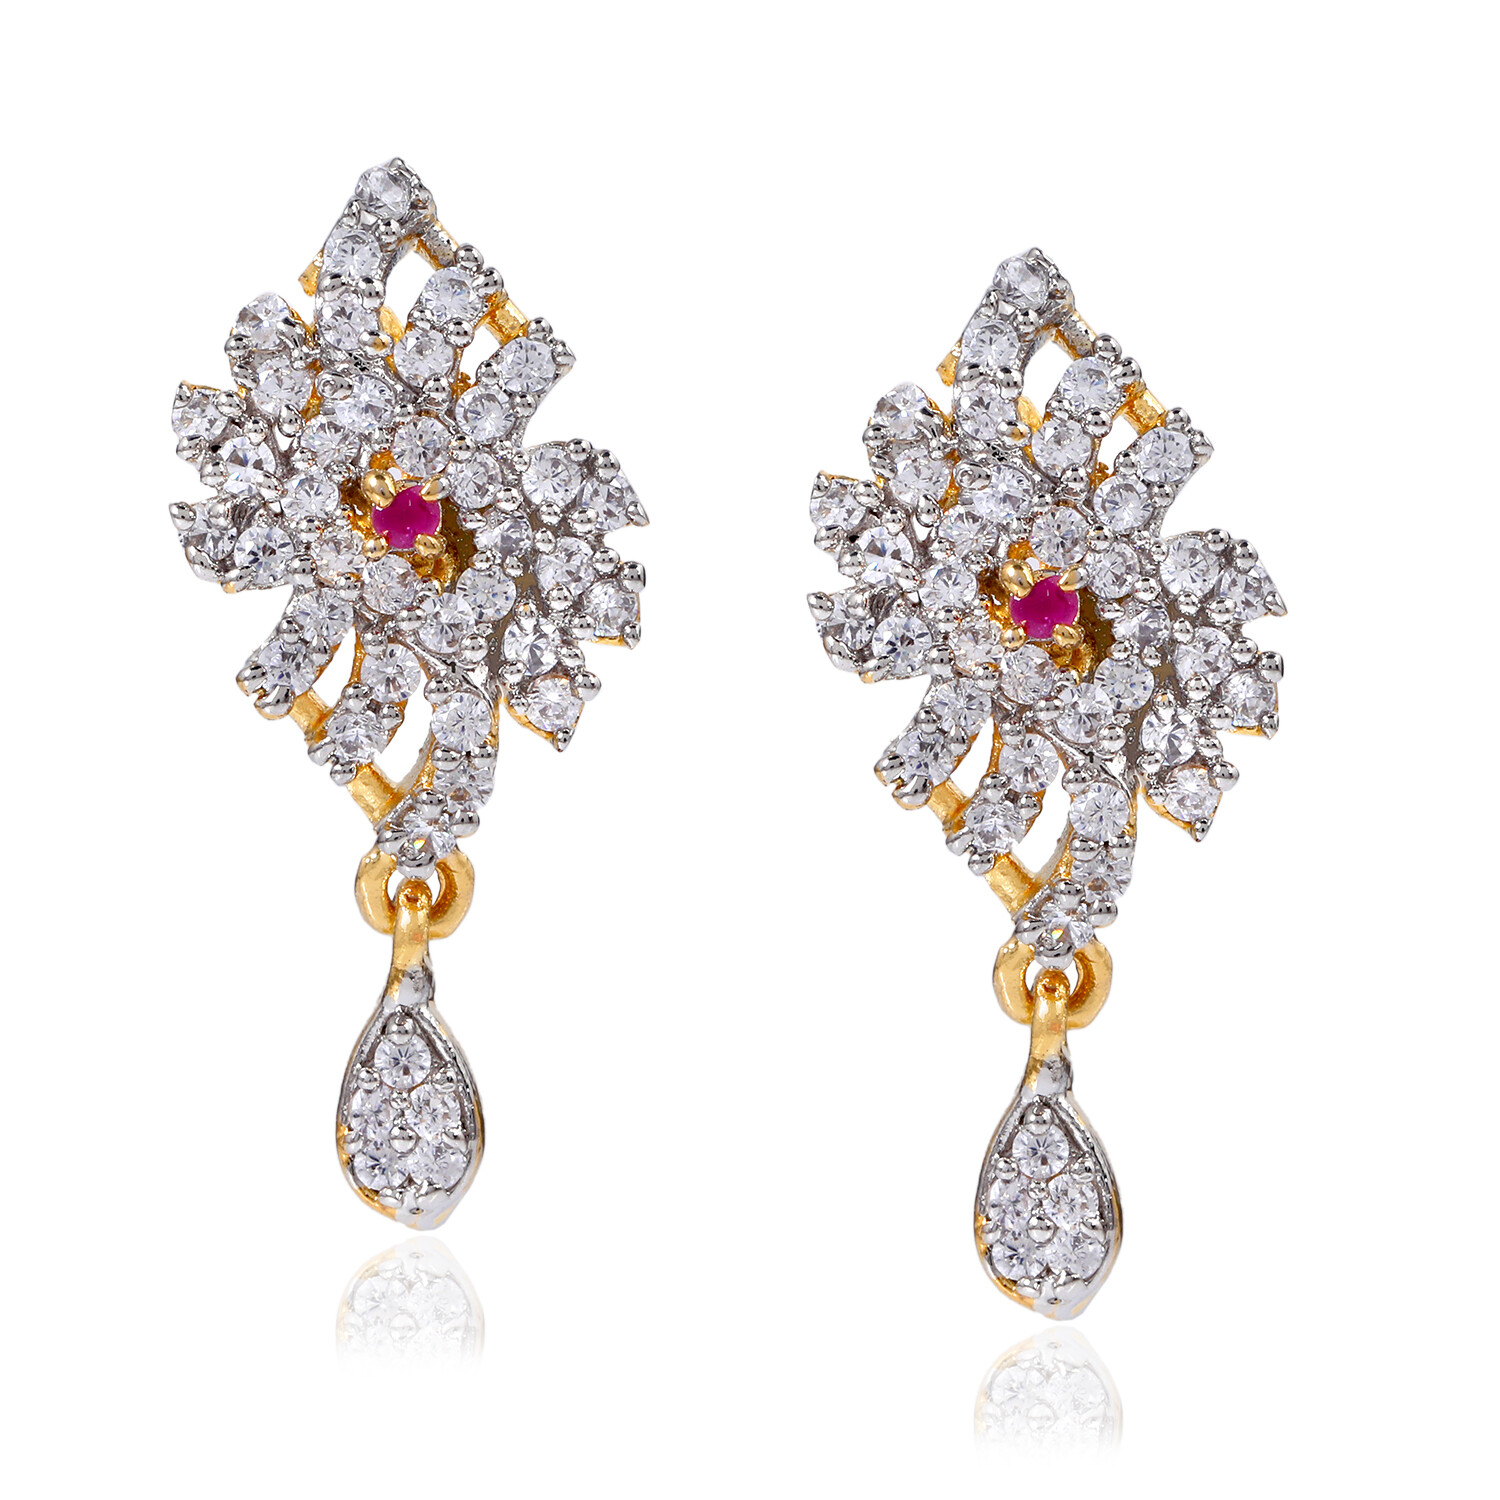 Estele AD Crystal Traditional Wear Earrings